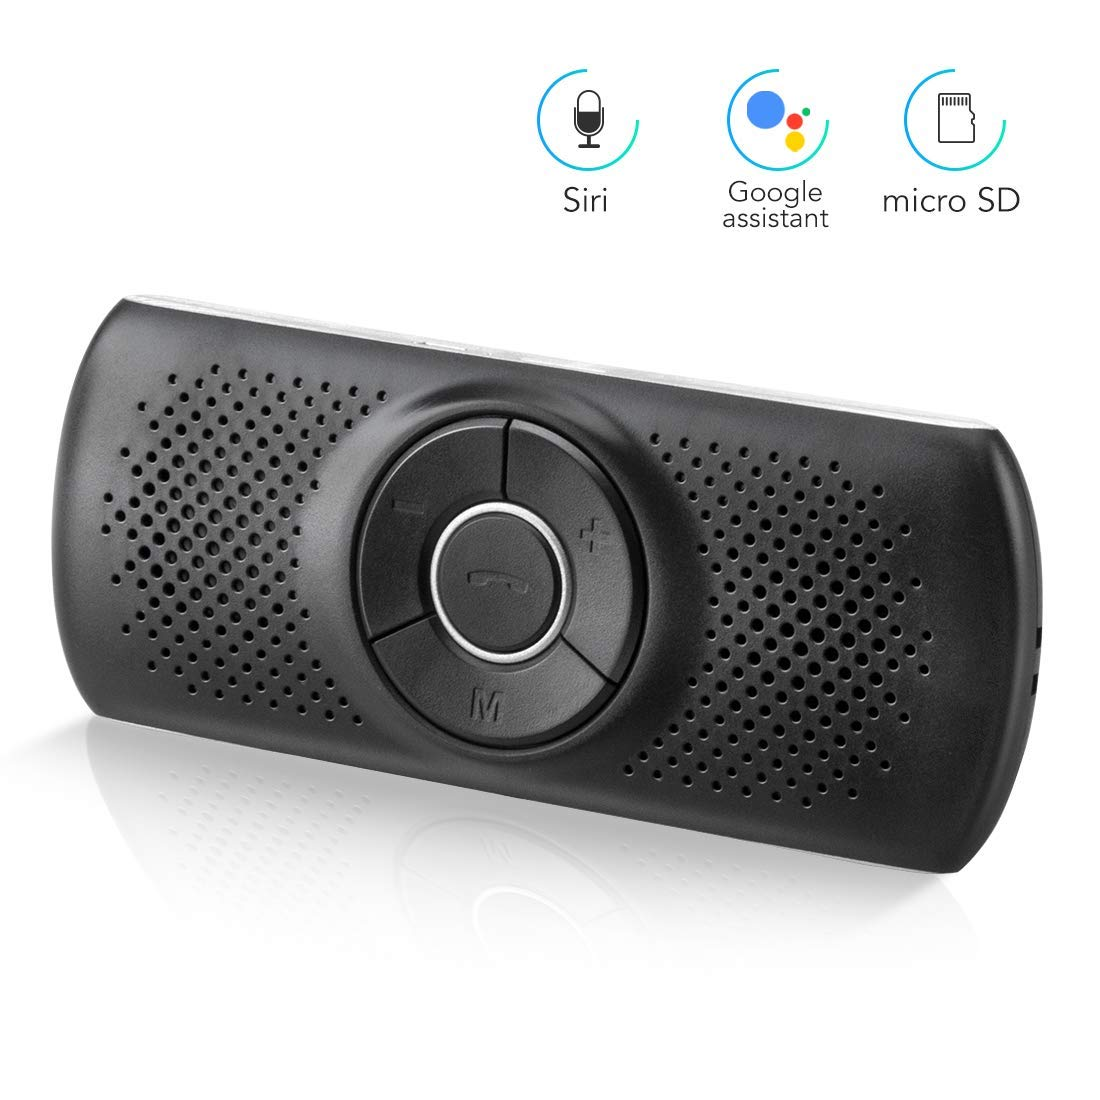 Wireless Hands Free Car Kit with Siri /& Google Assistant AGPTEK Bluetooth Car Speakerphone T826, Black 2 Cell Phones Bluetooth Connection Bluetooth Visor Speakerphone for Android /& iOS